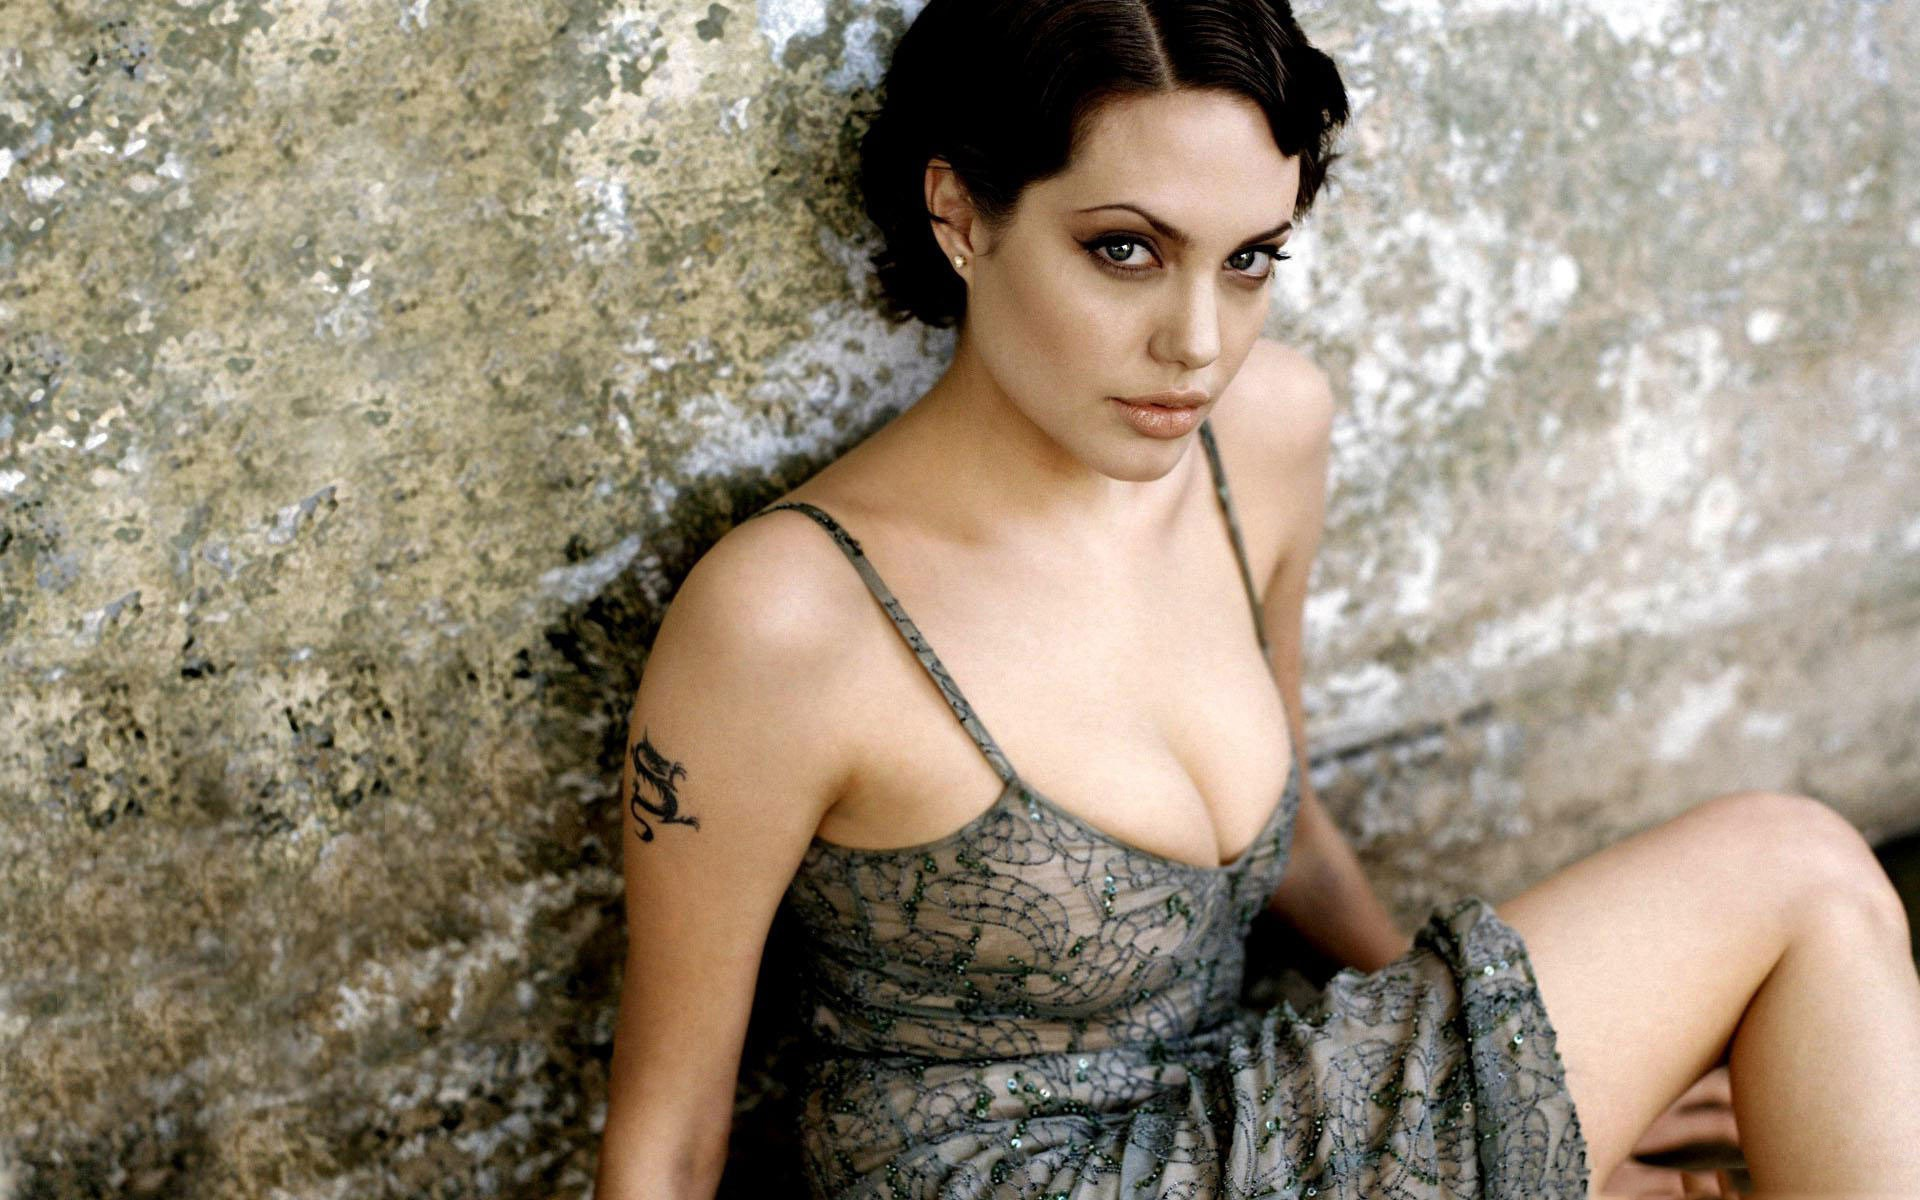 Angelina-Jolie-2013-Photoshoot-Background-HD-Wallpaper.jpg